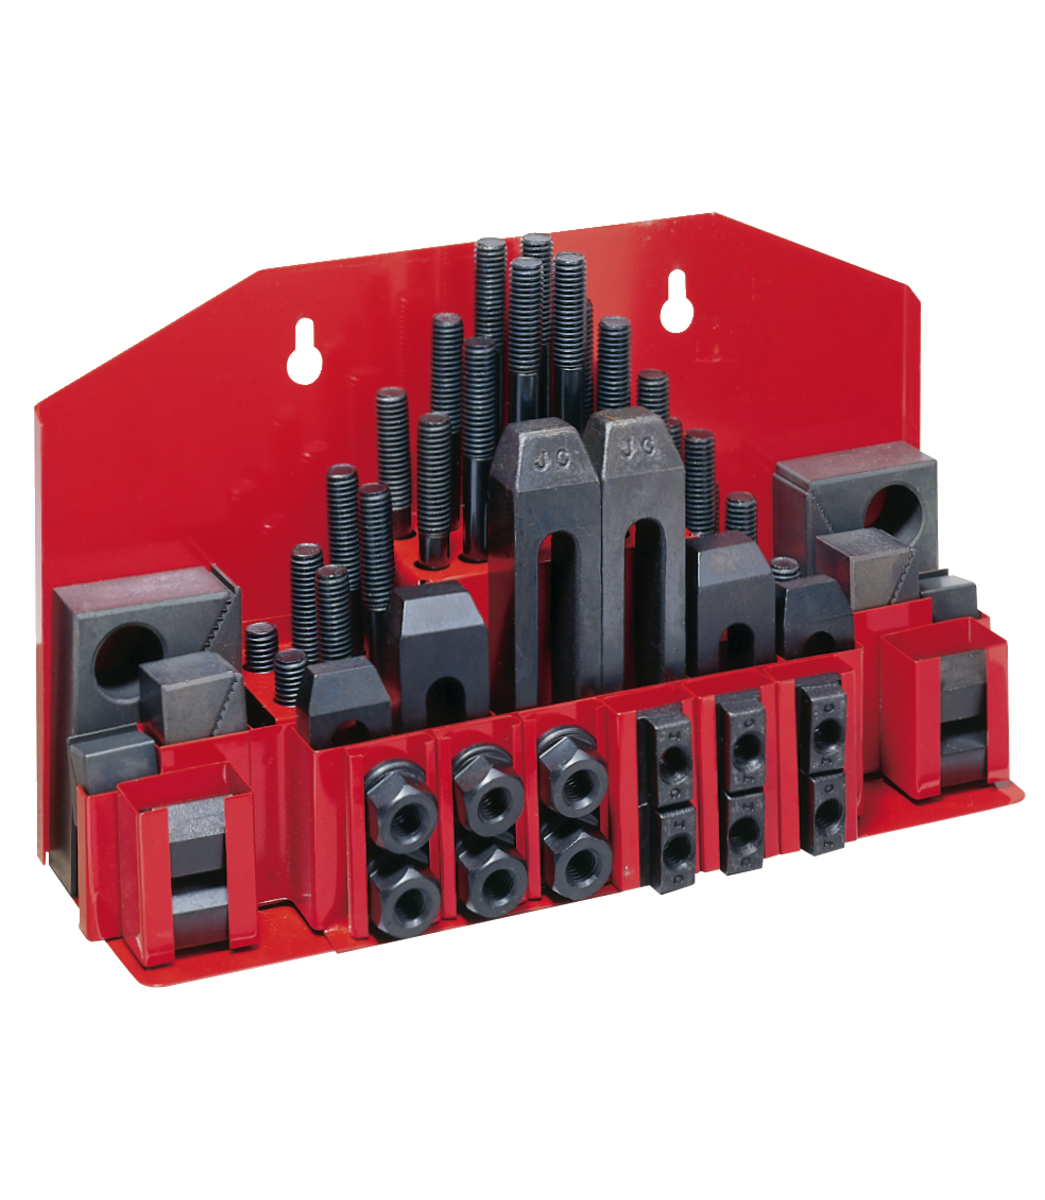 """CK-38, 58-Piece Clamping Kit with Tray for 5/8"""" T-Slot"""